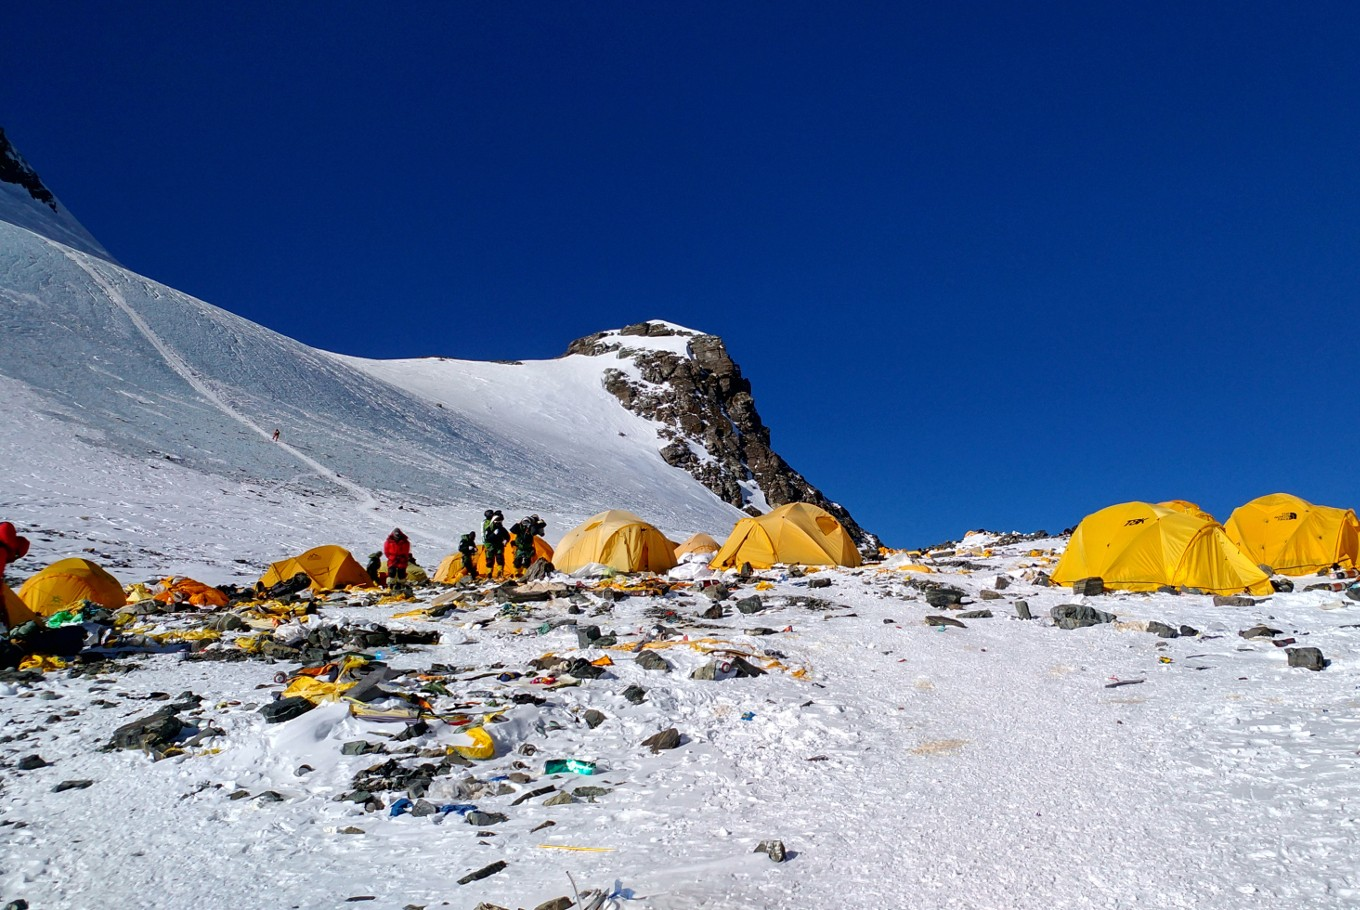 Nepal to send team to clean Mount Everest